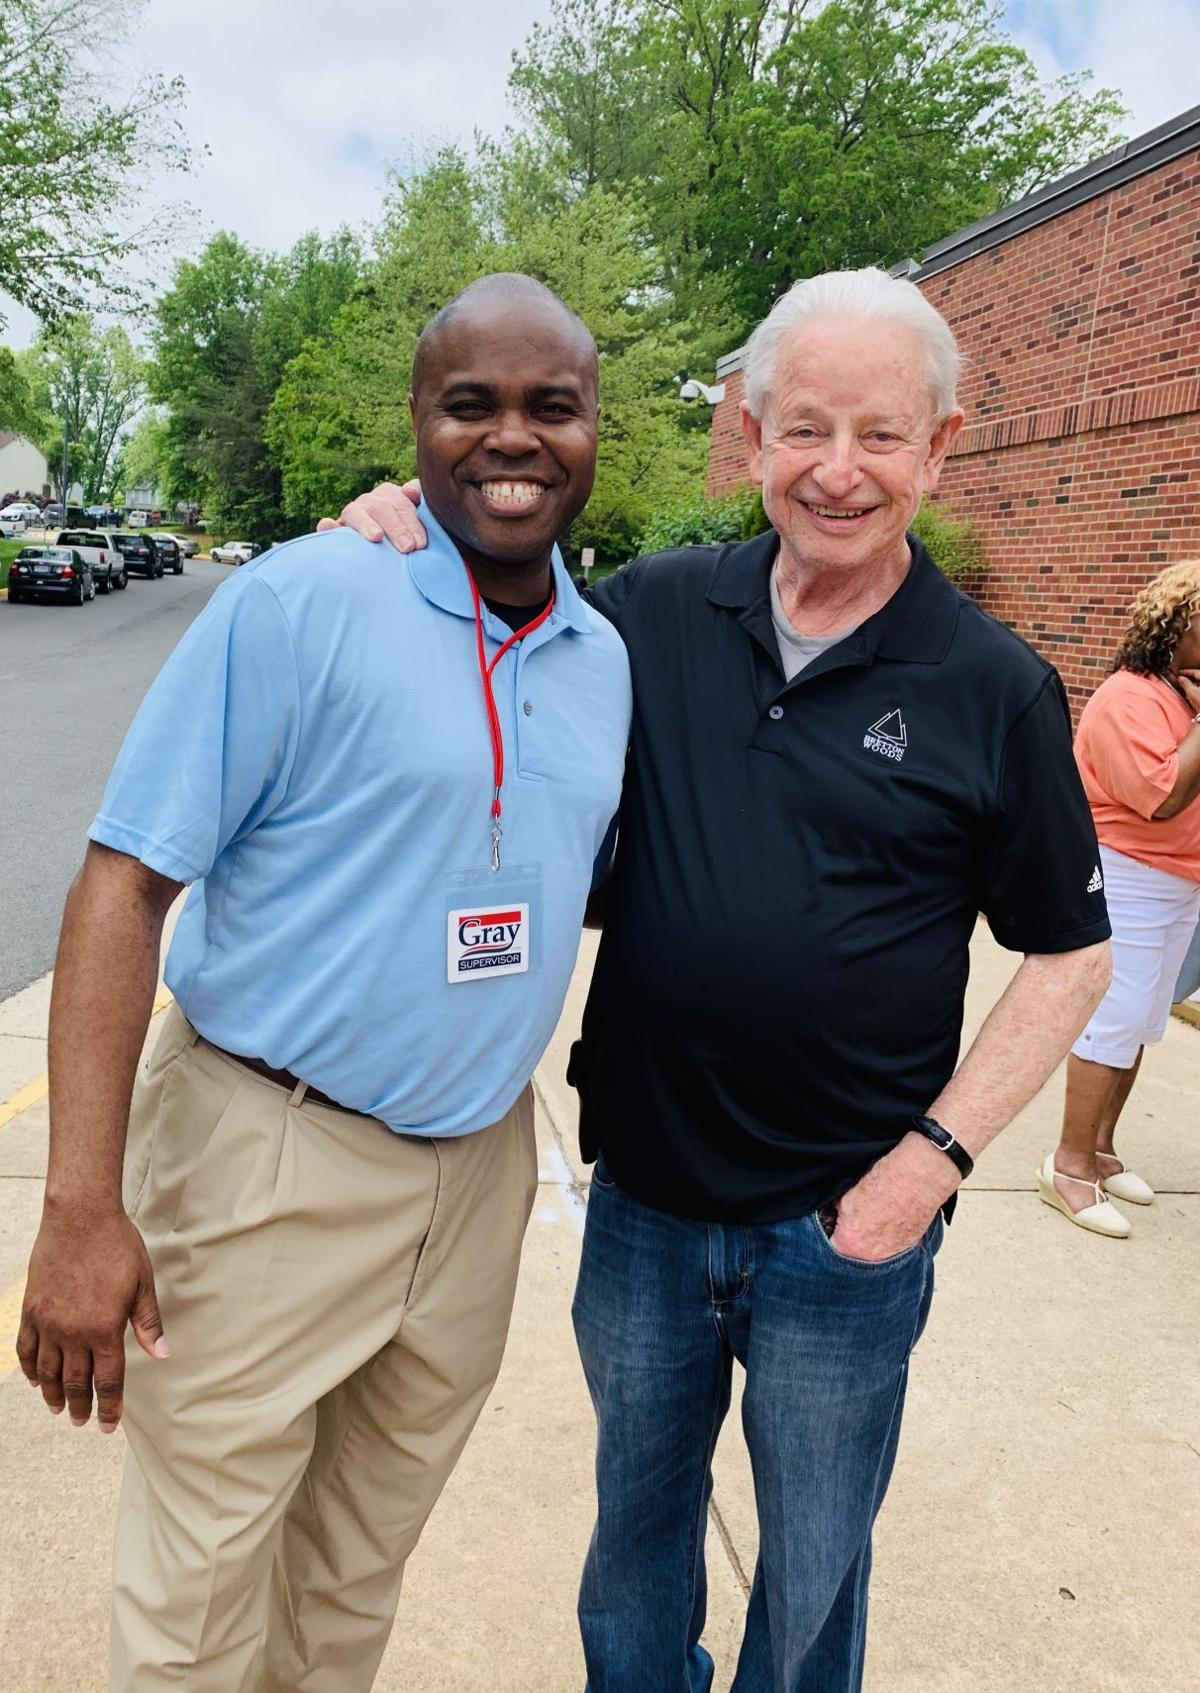 Davon Gray and supporter Peter Homan outside Montclair Elementary